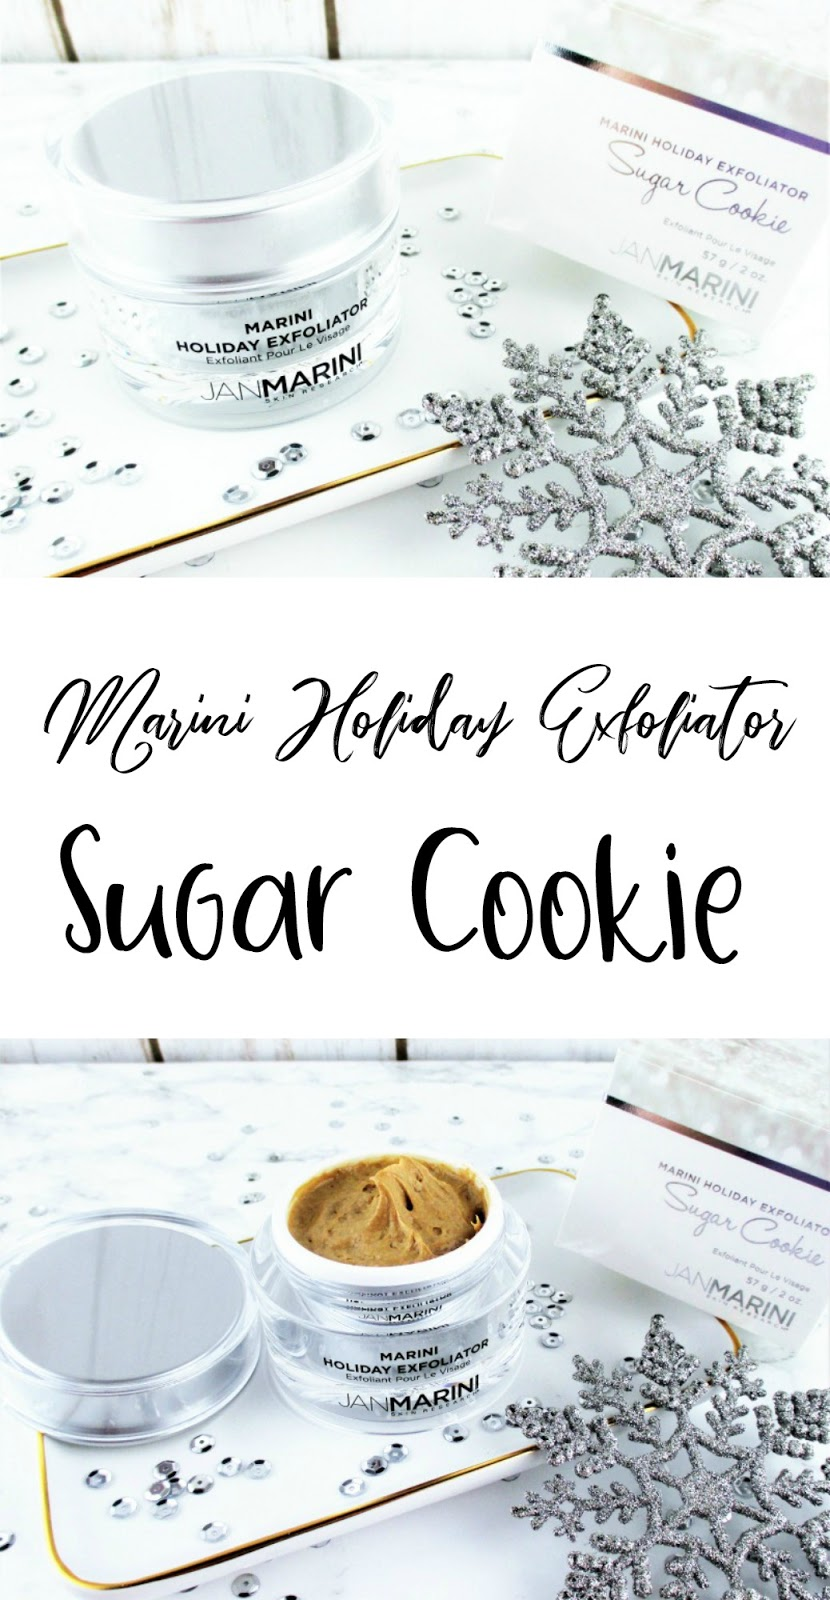 jan-marini-holiday-exfoliator-sugar-cookie